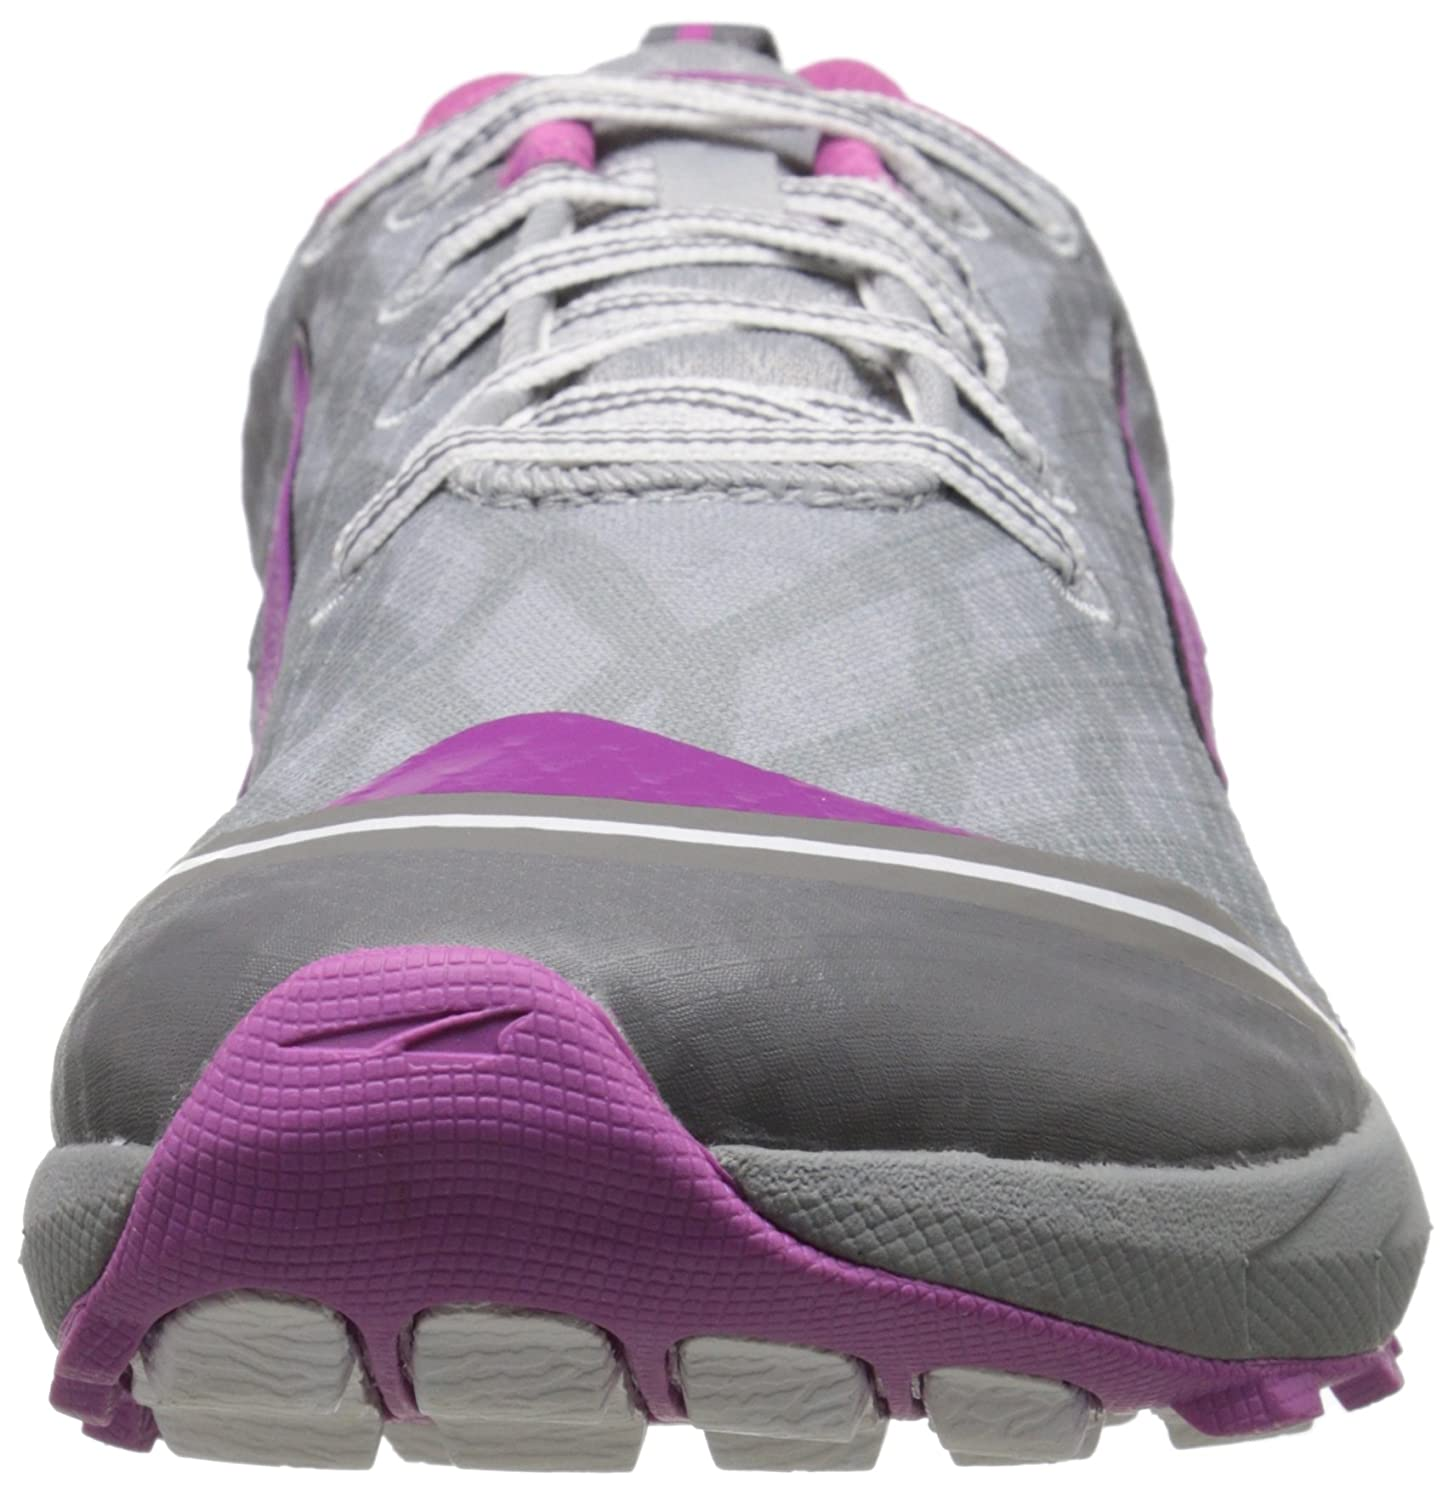 Altra Women's Superior 2 Trail Running Shoe B013RNF04C 6 B(M) US Orchid/Silver